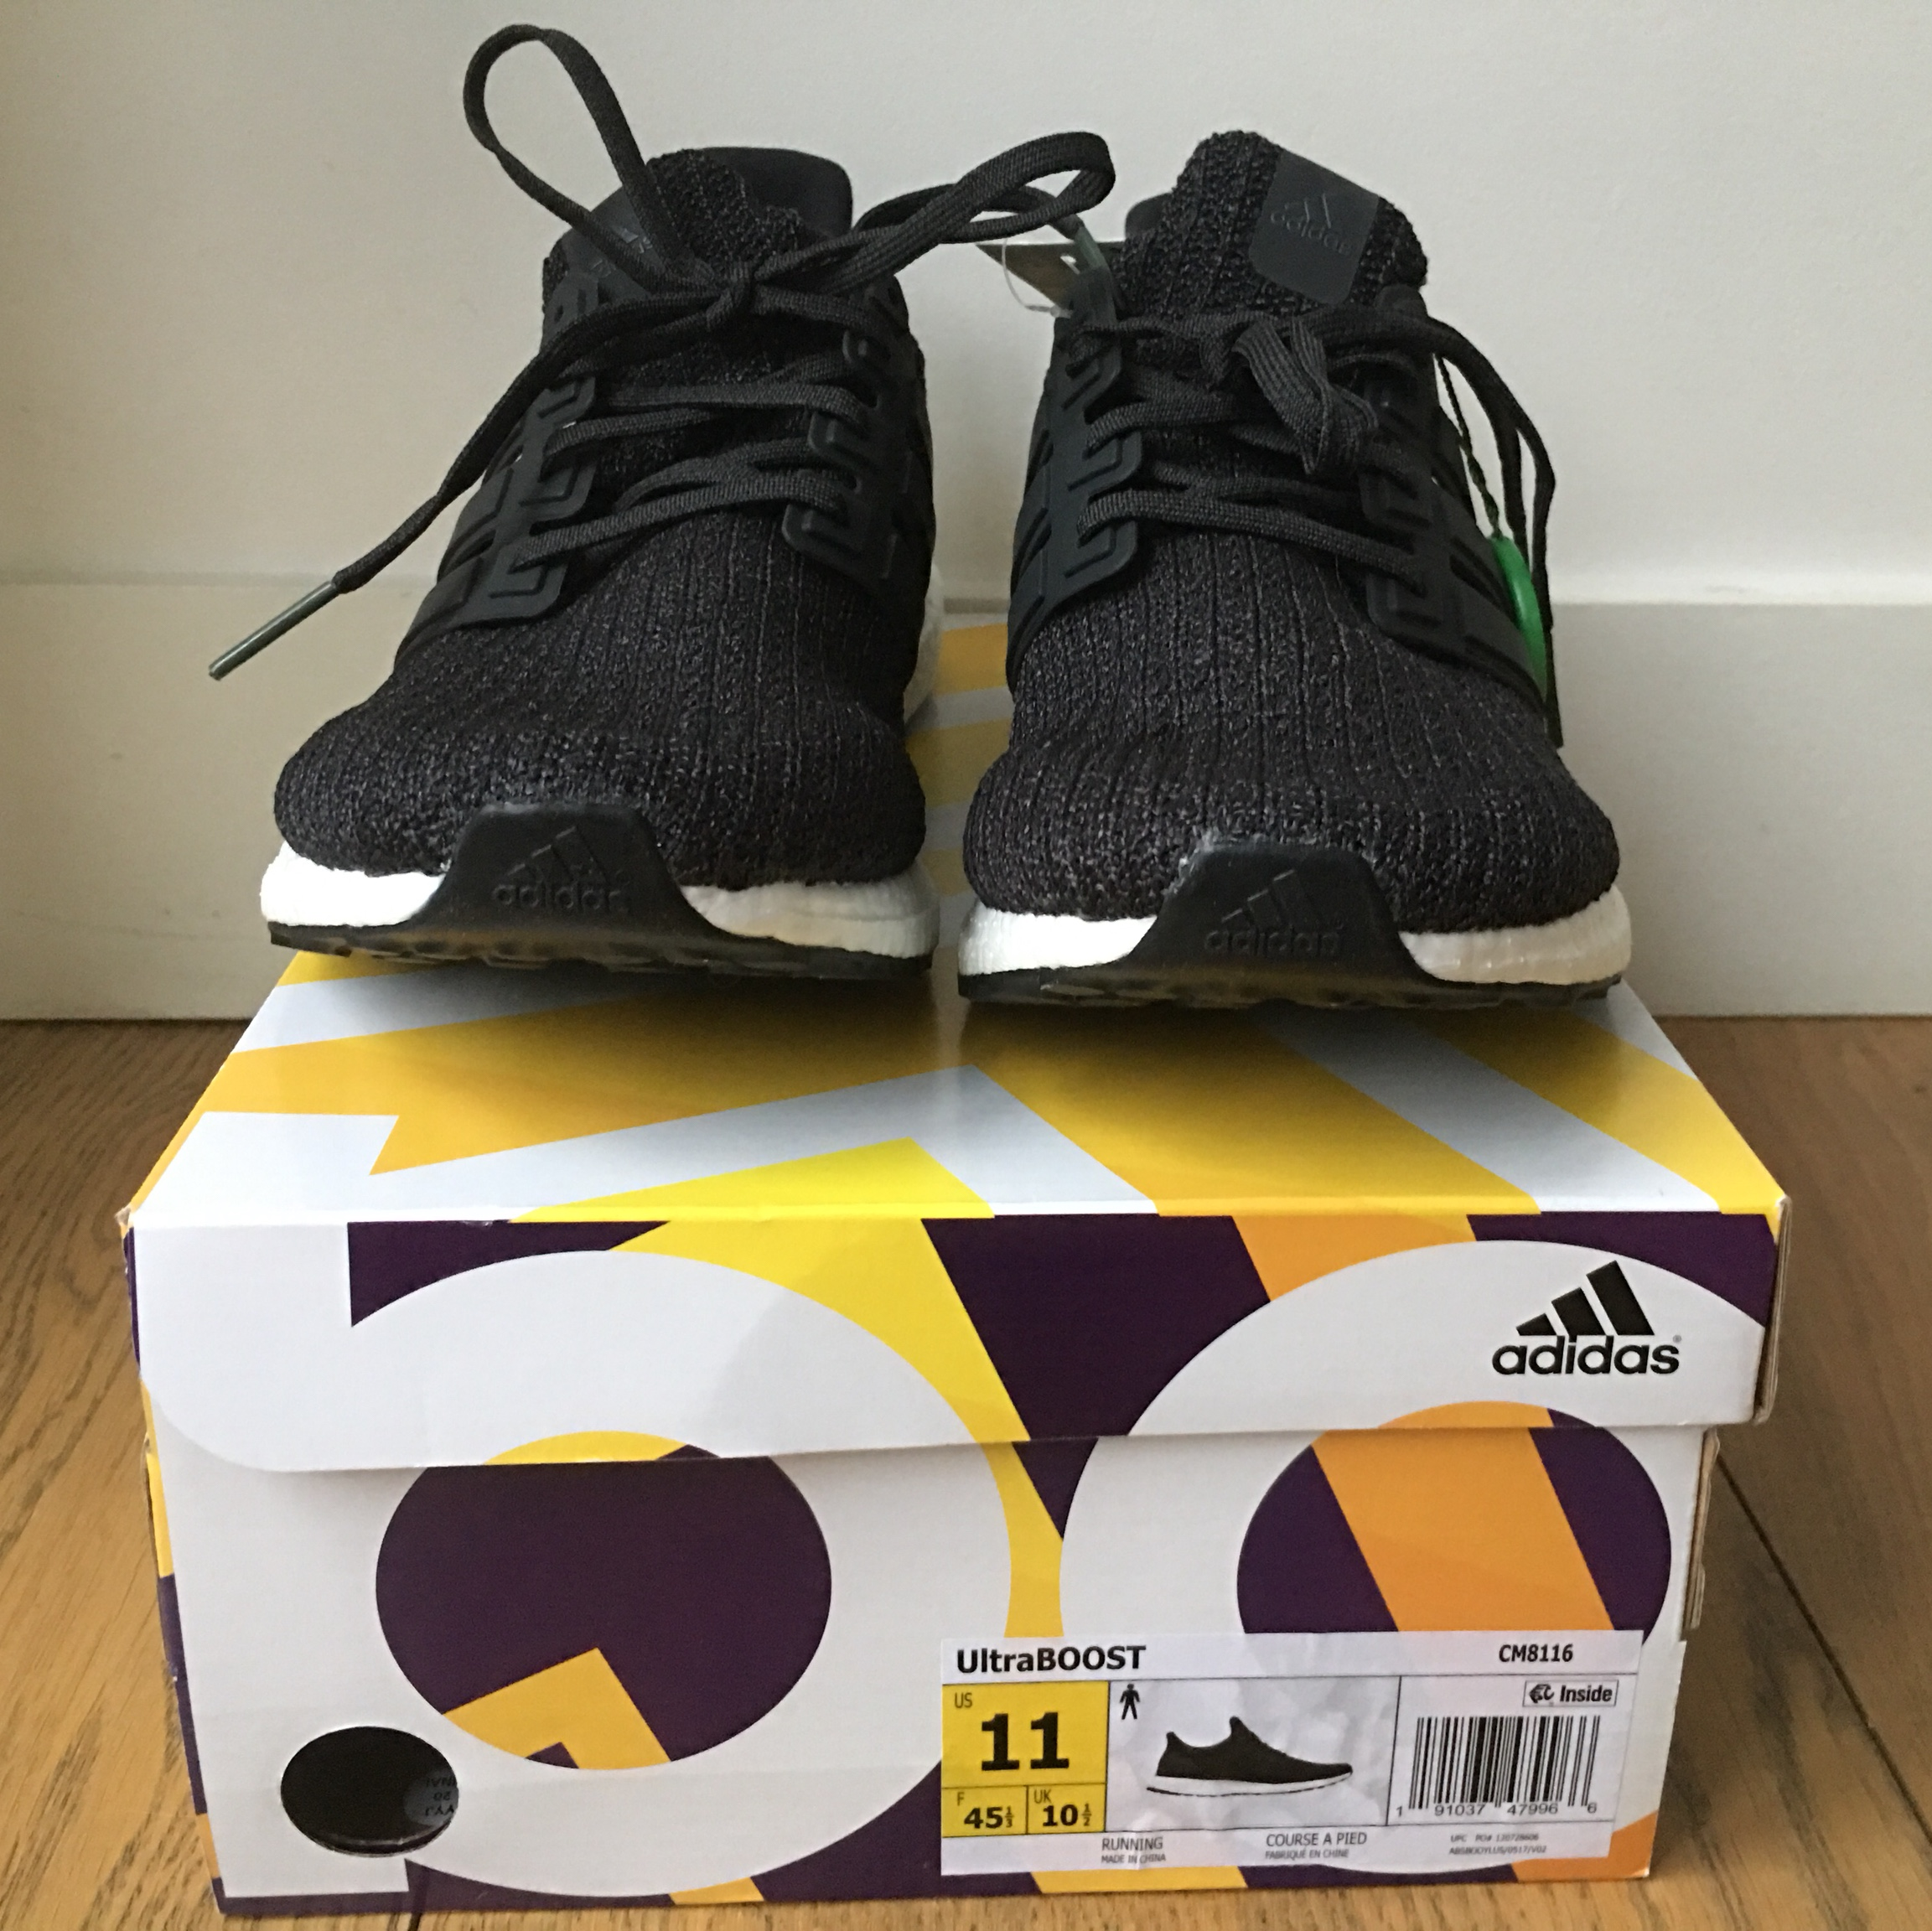 low priced 92e1f 923b8 Adidas UltraBOOST Retail price £150 My price... - Depop